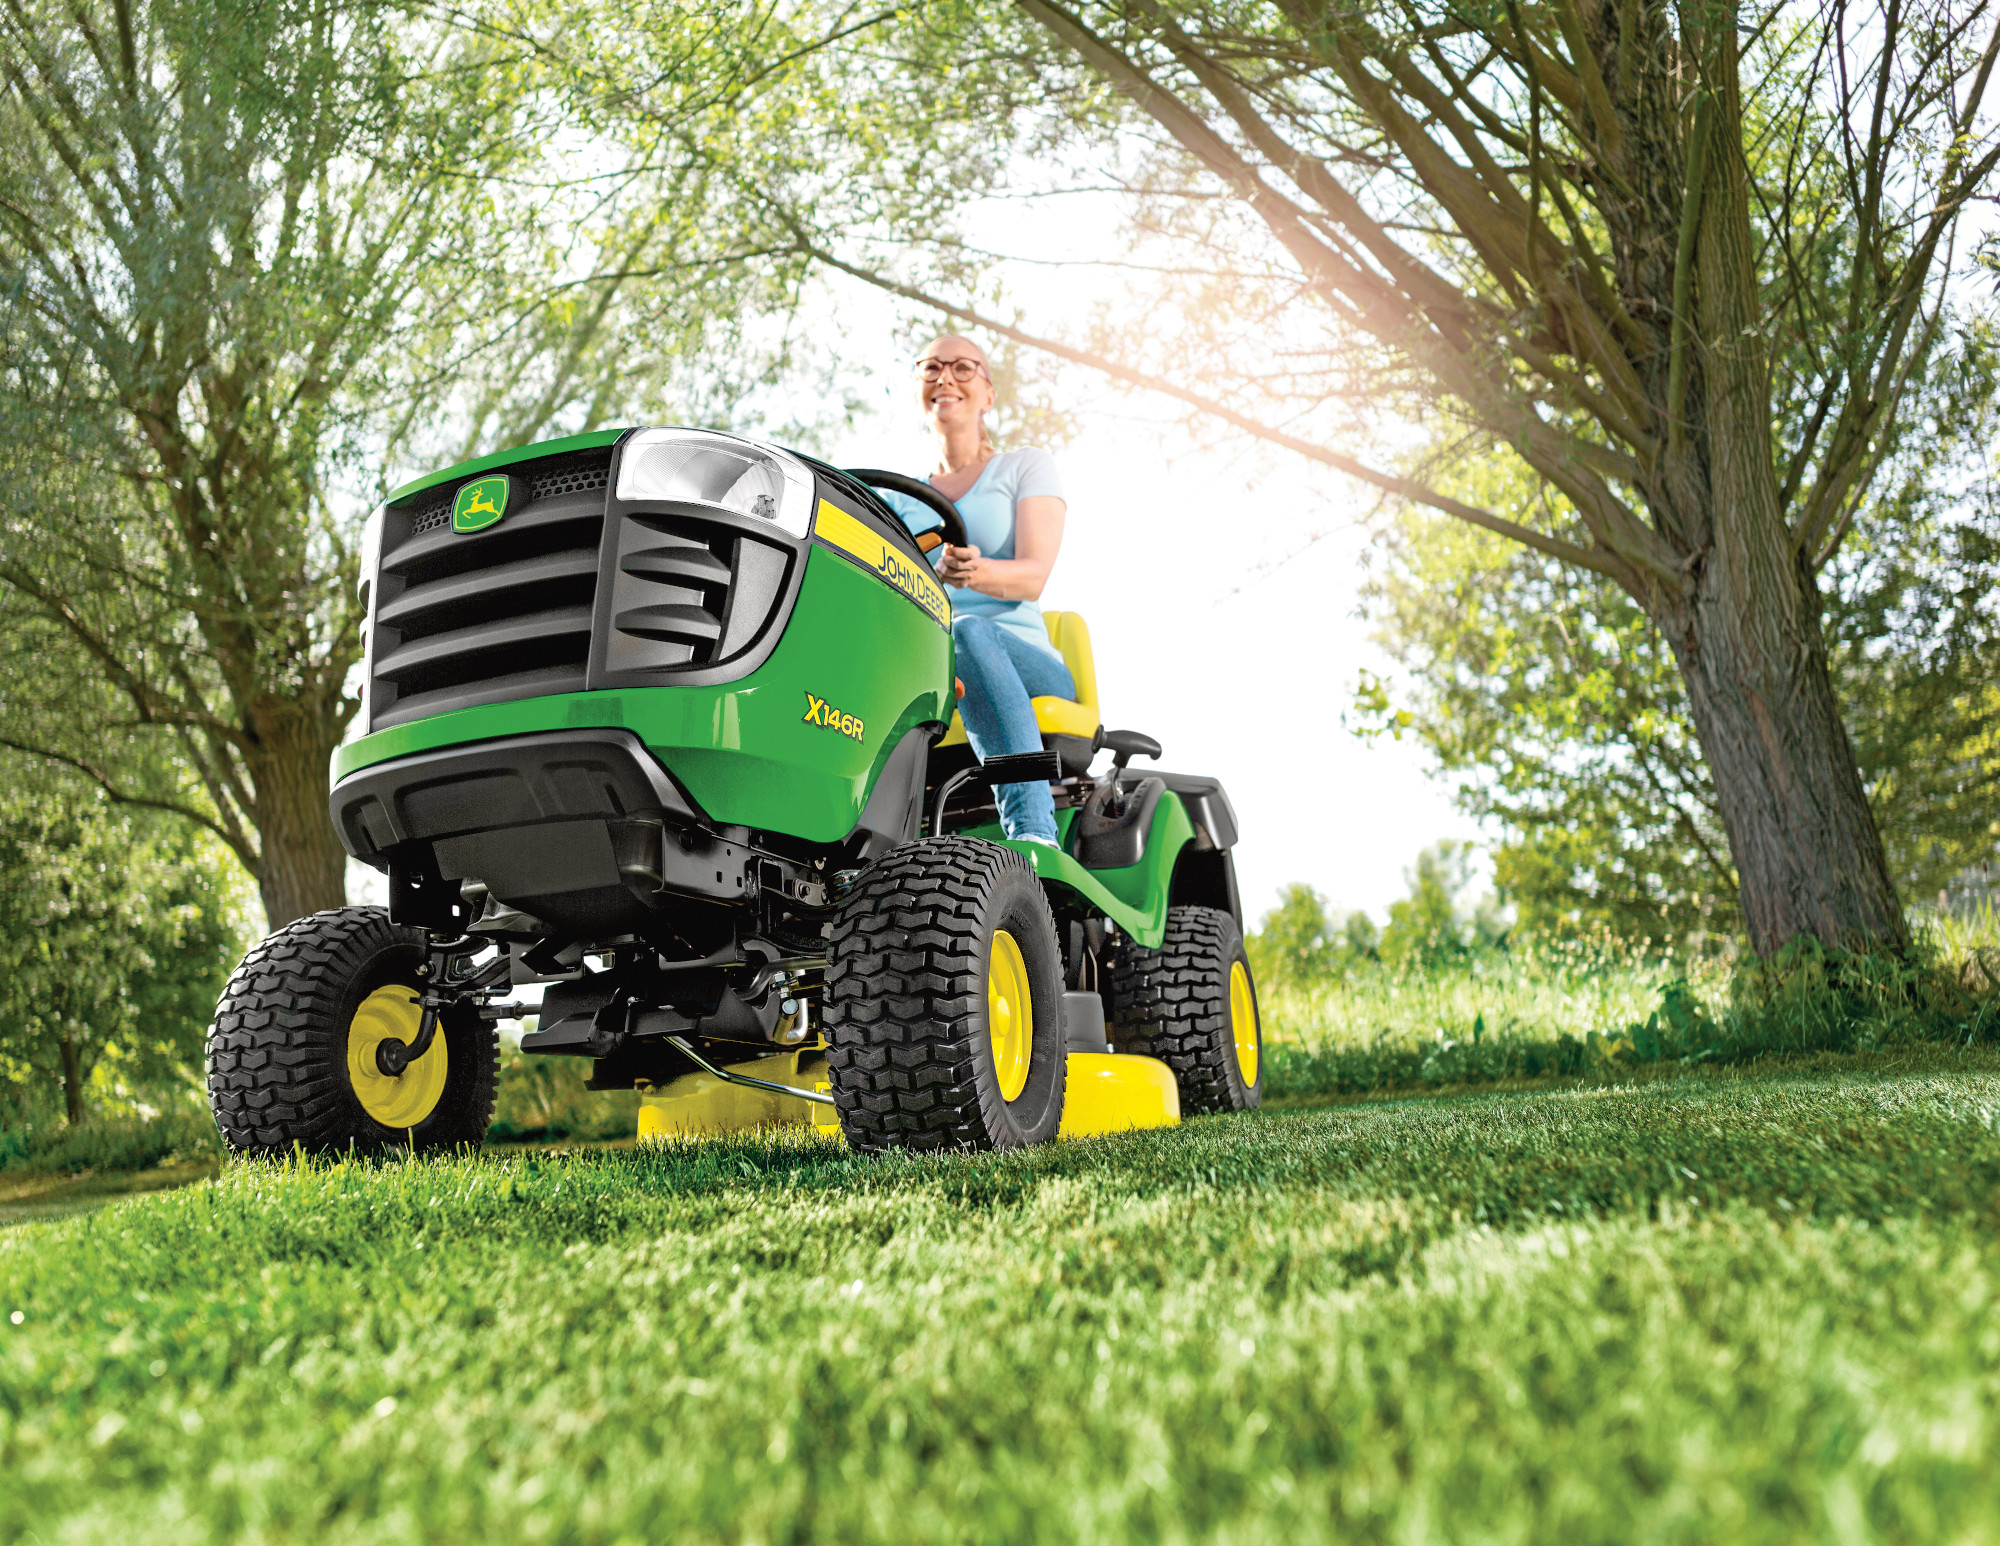 END OF SEASON SPECIAL! John Deere X146R ride on mower